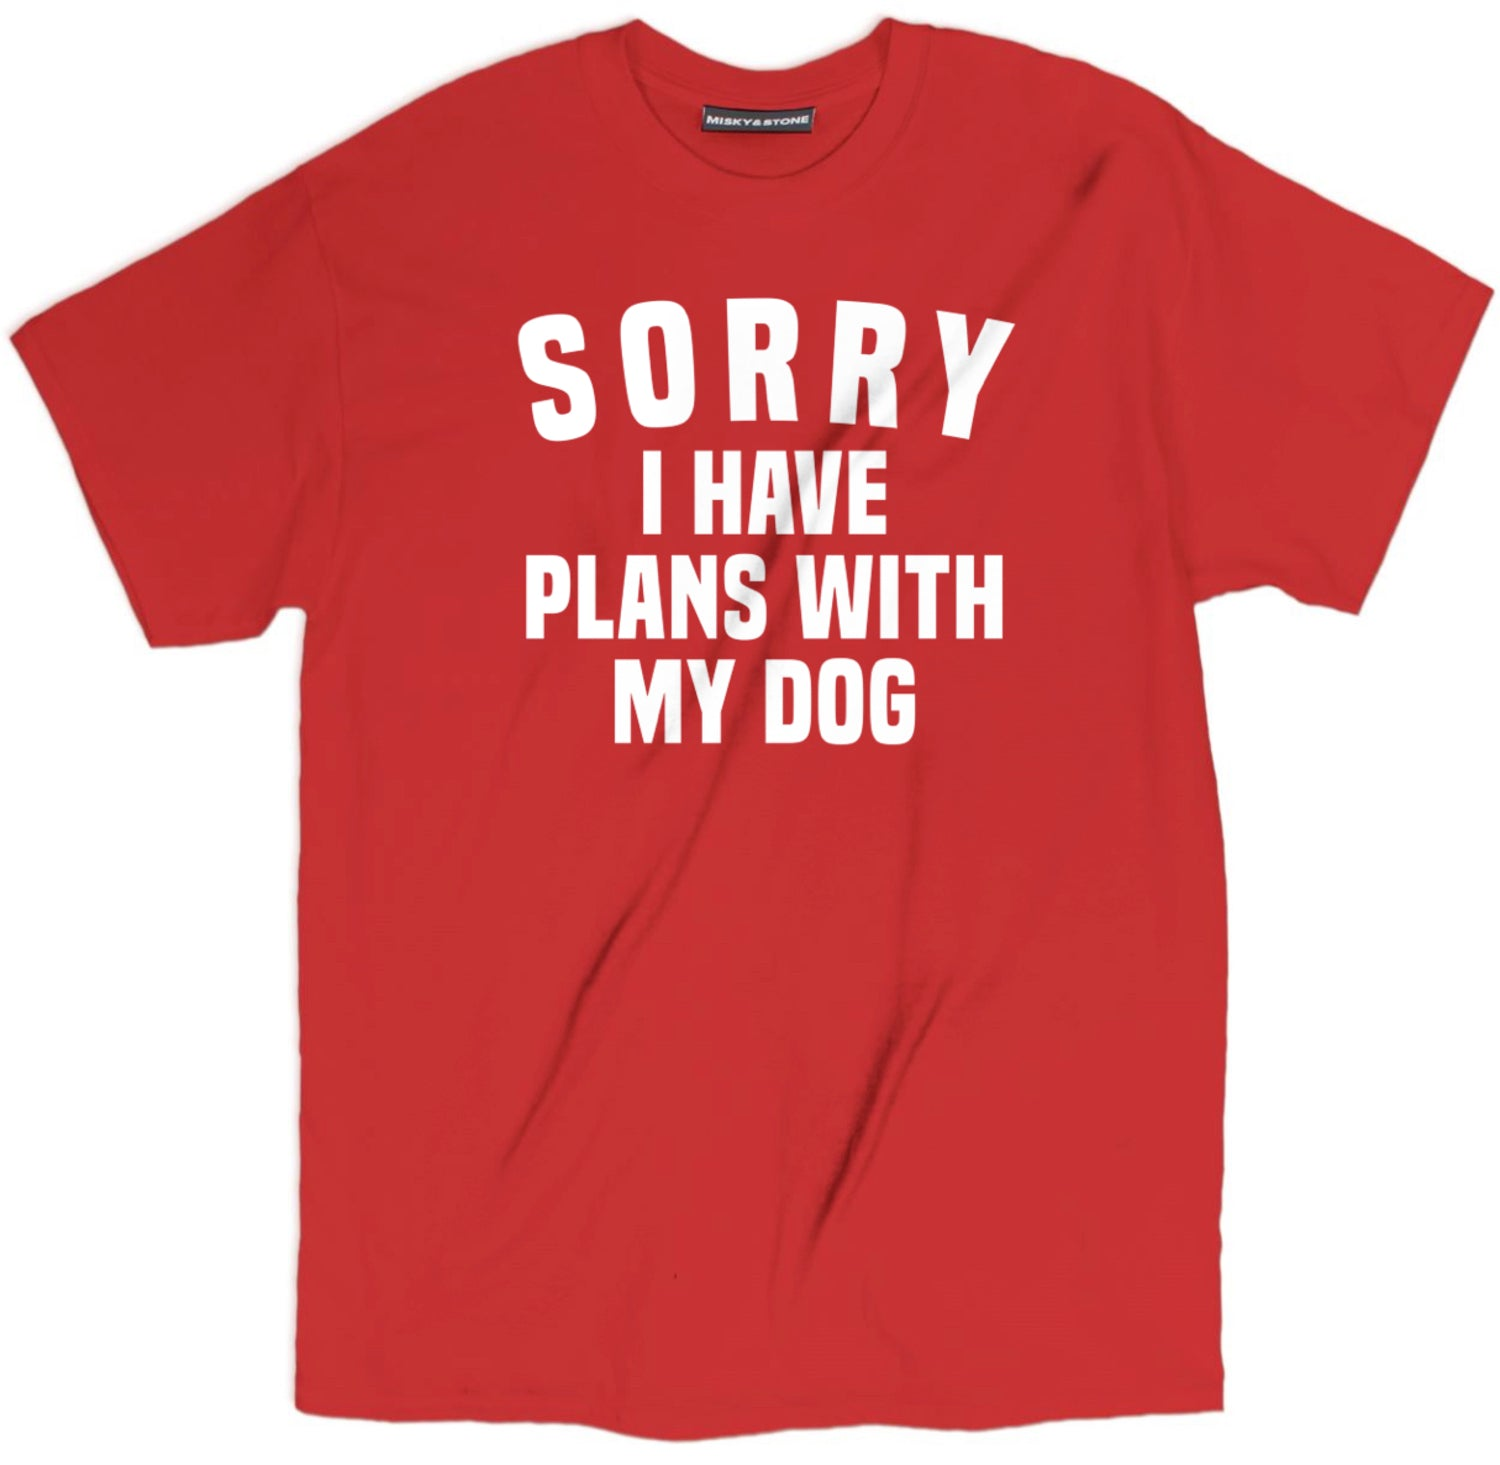 sorry i have plans with my dog t shirt, dog t shirts, dog shirts, dog lover t shirts, dog lover shirts, funny dog t shirt, dog tees,